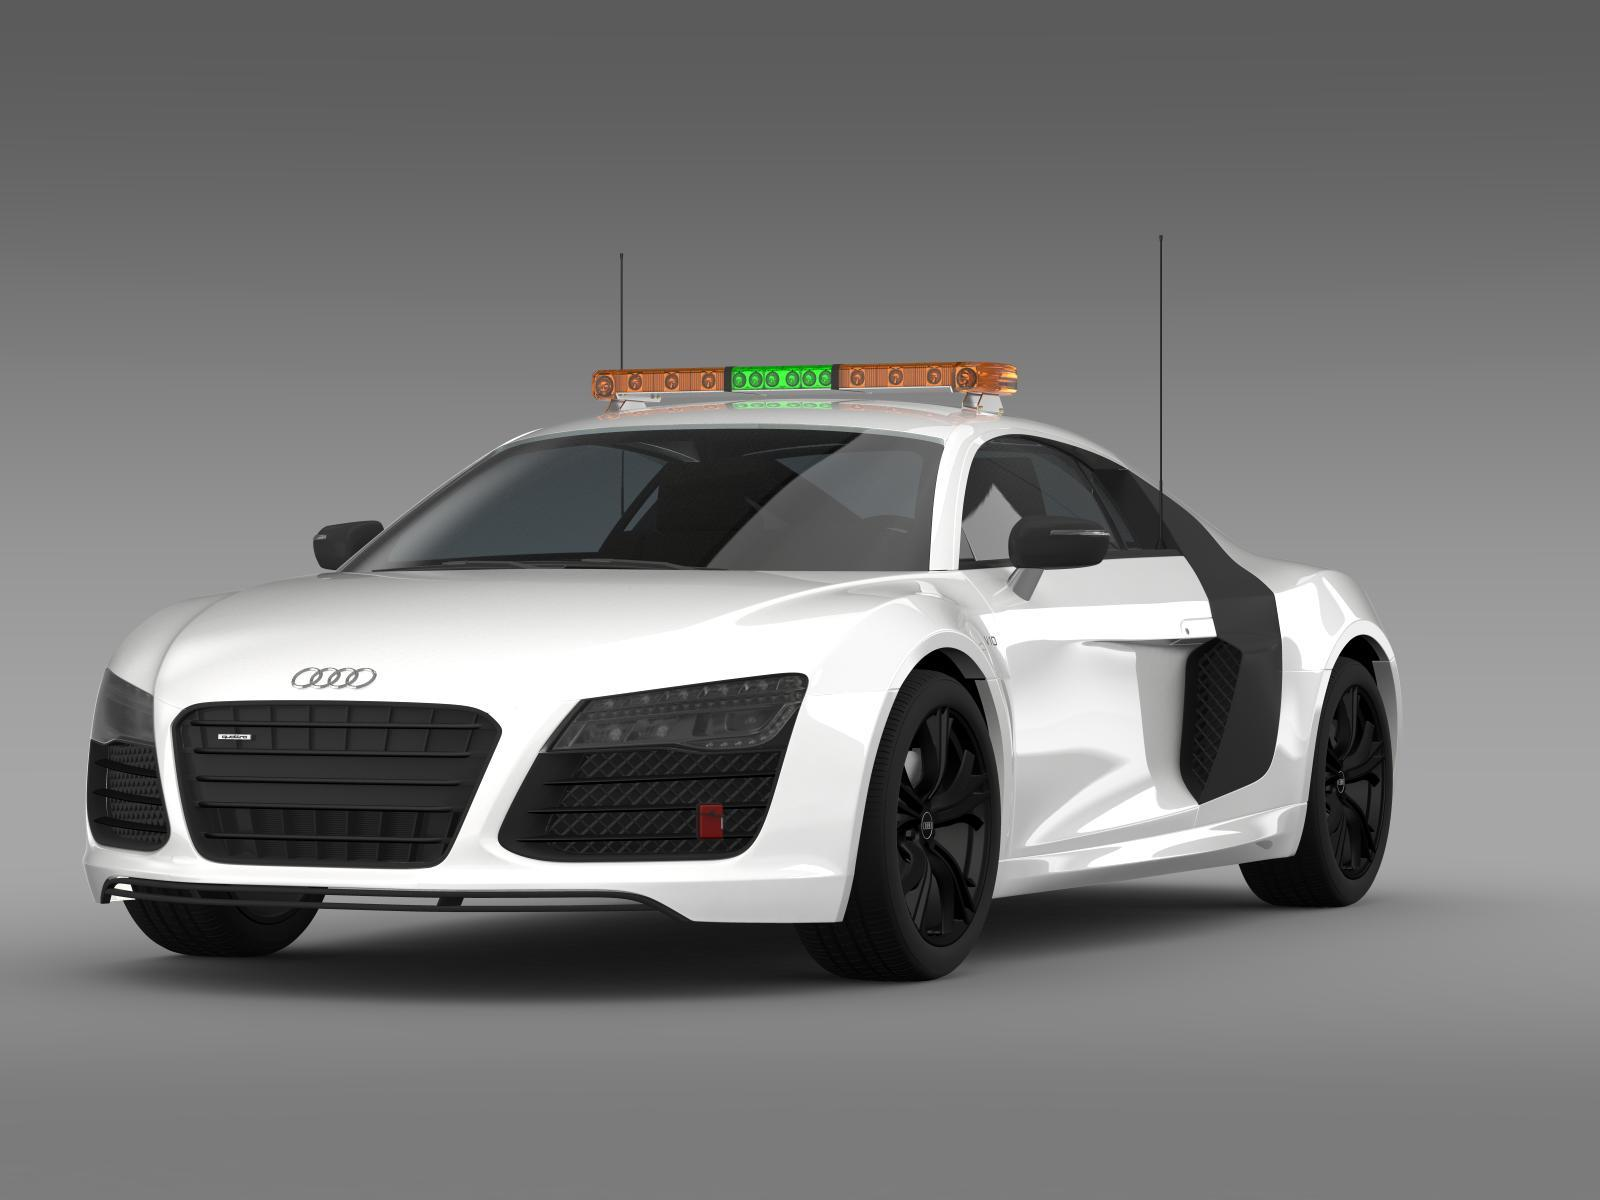 audi r8 v10plus safety car by creator 3d 3docean